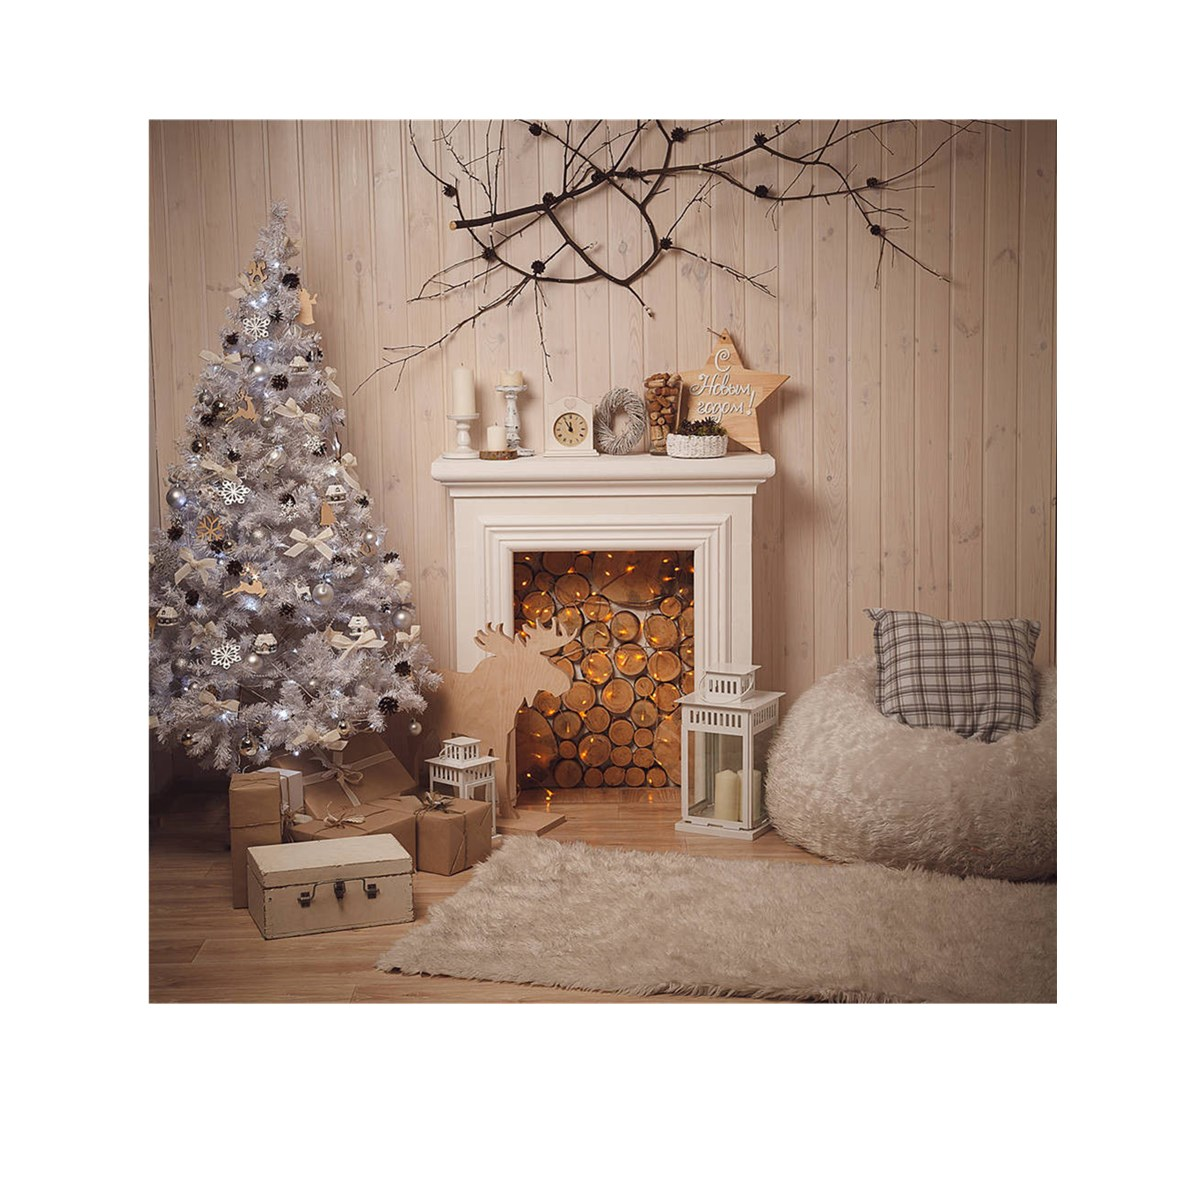 5x5FT Christmas Fireplace Theme Photography Backdrop Studio Prop Background